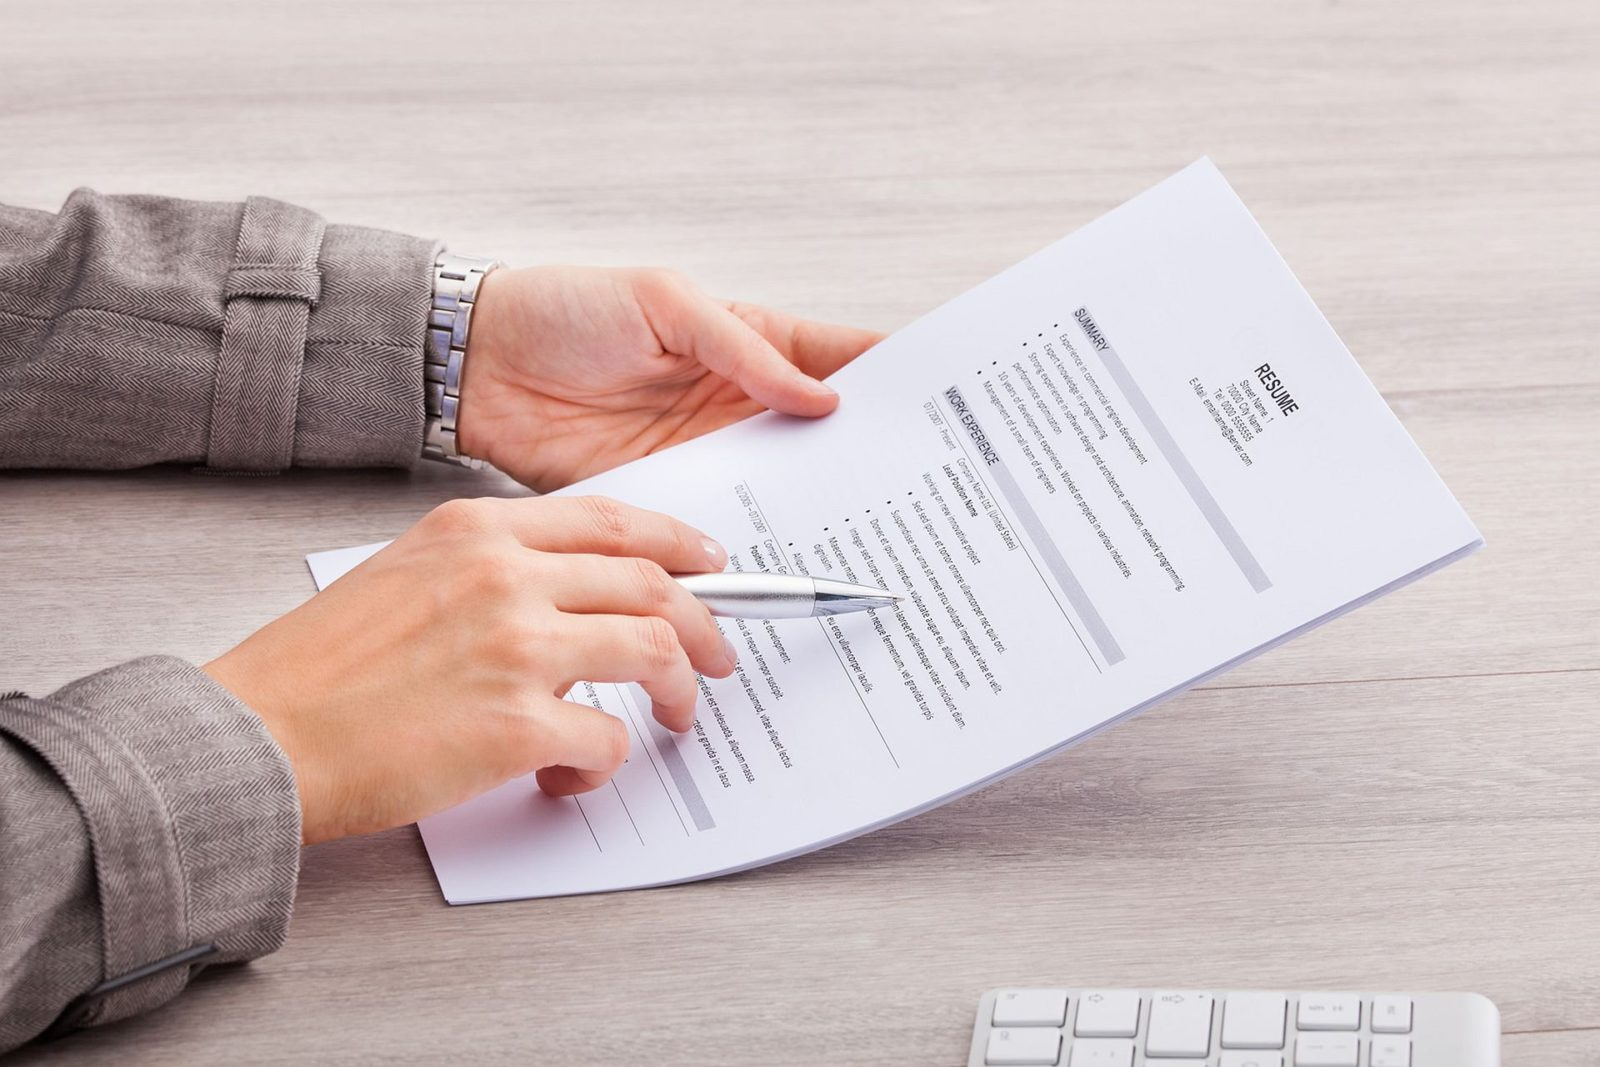 14 Professional Resume Tips to Land Your Next Job Interview